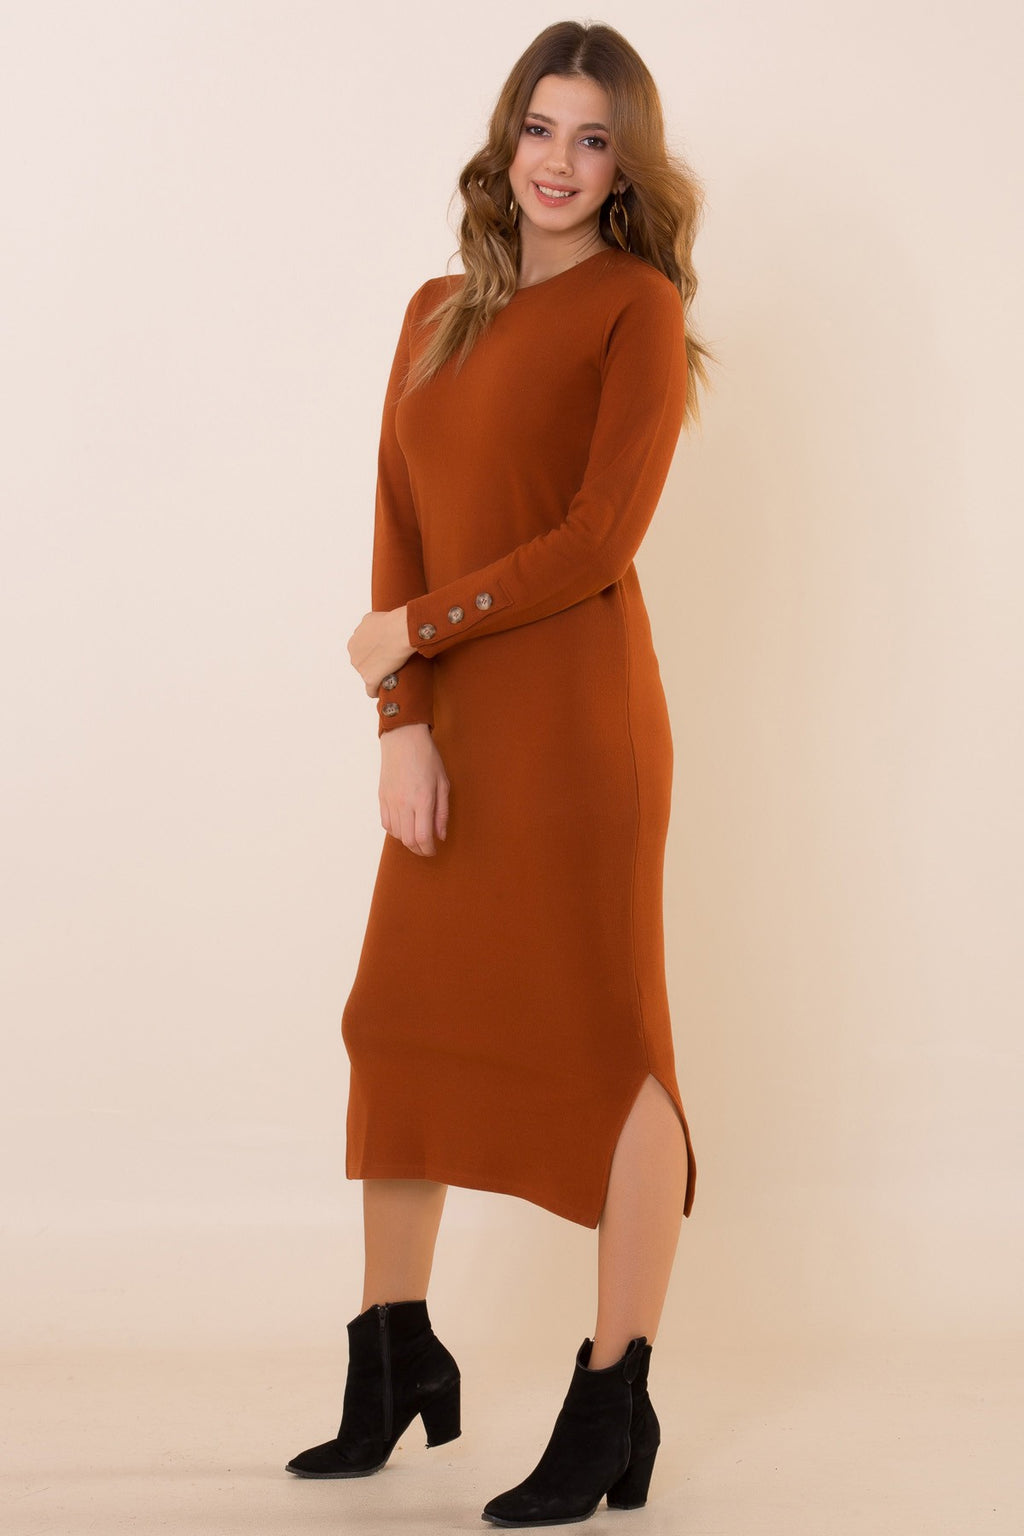 Women's Buttoned Sleeves Mustard Slit Dress (Contest)